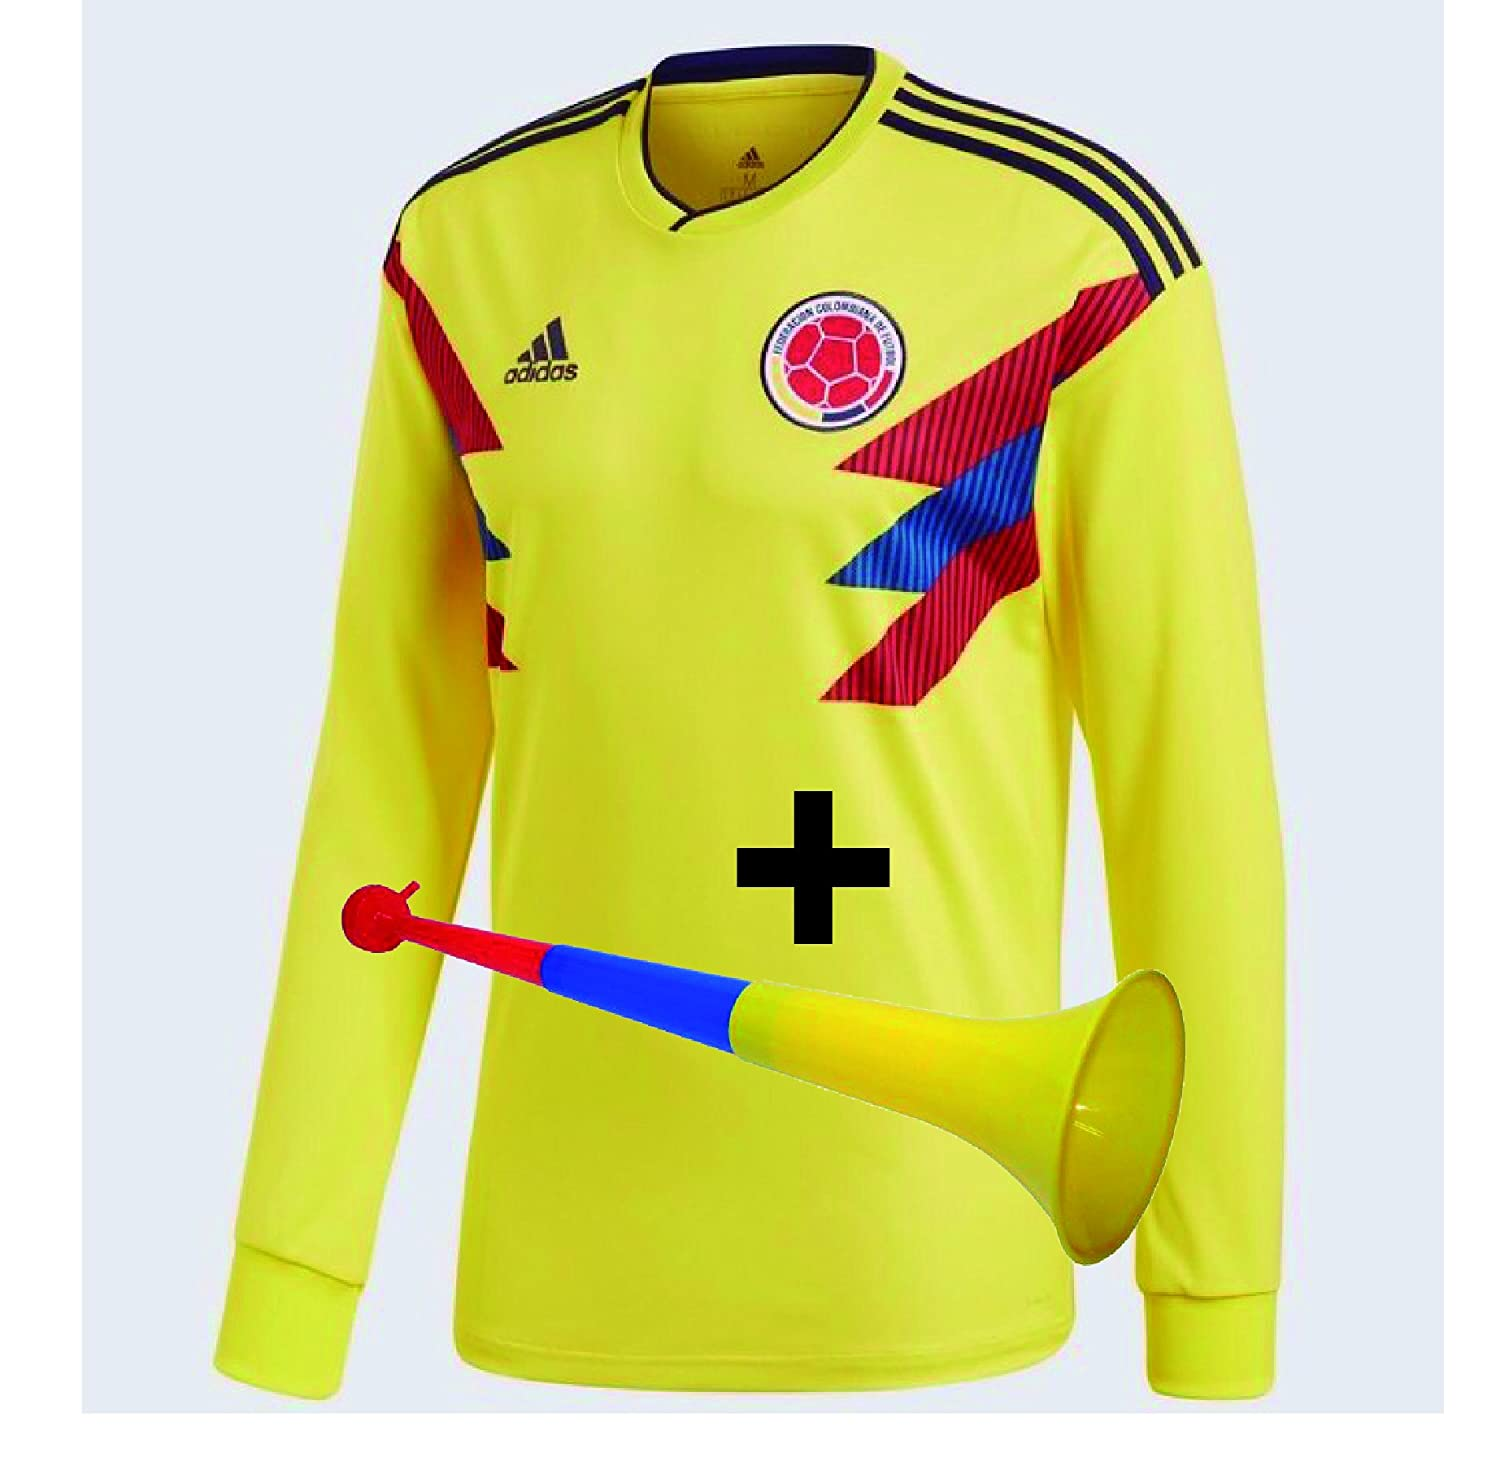 Camiseta seleccion Colombia manga larga replica y Corneta plastica (L) at Amazon Mens Clothing store: